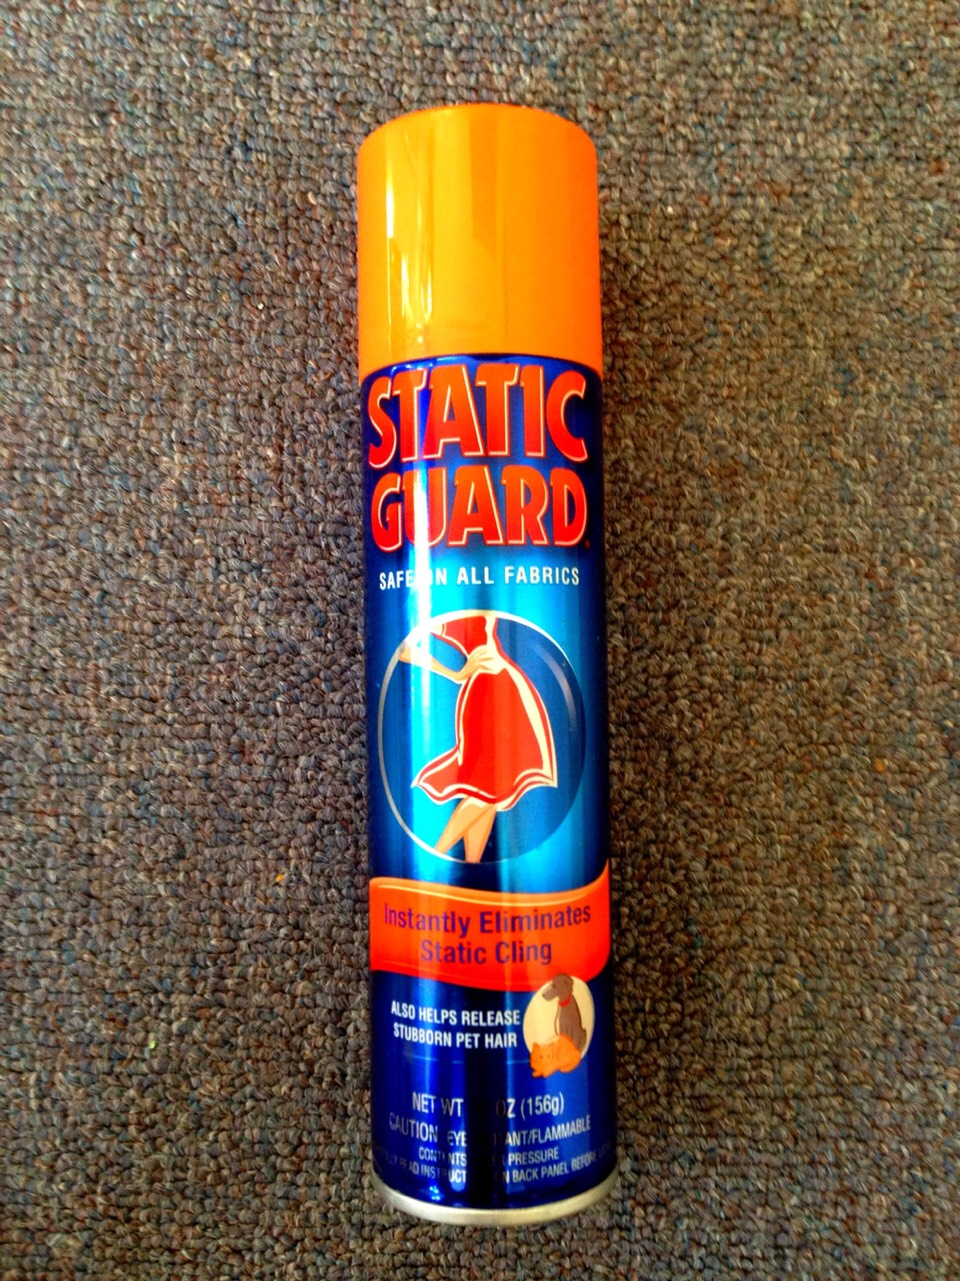 6. Static Guard Spray Static cling makes laundry suck just a little bit more. But sometimes that extra punch of suck can really drive you crazy. Plus, those little tricks like using dryer sheets or shaking your clothes as soon as they come out of the dryer doesn't always solve the problem. For this reason, we suggest having a bottle of Static Guard spray in your laundry arsenal